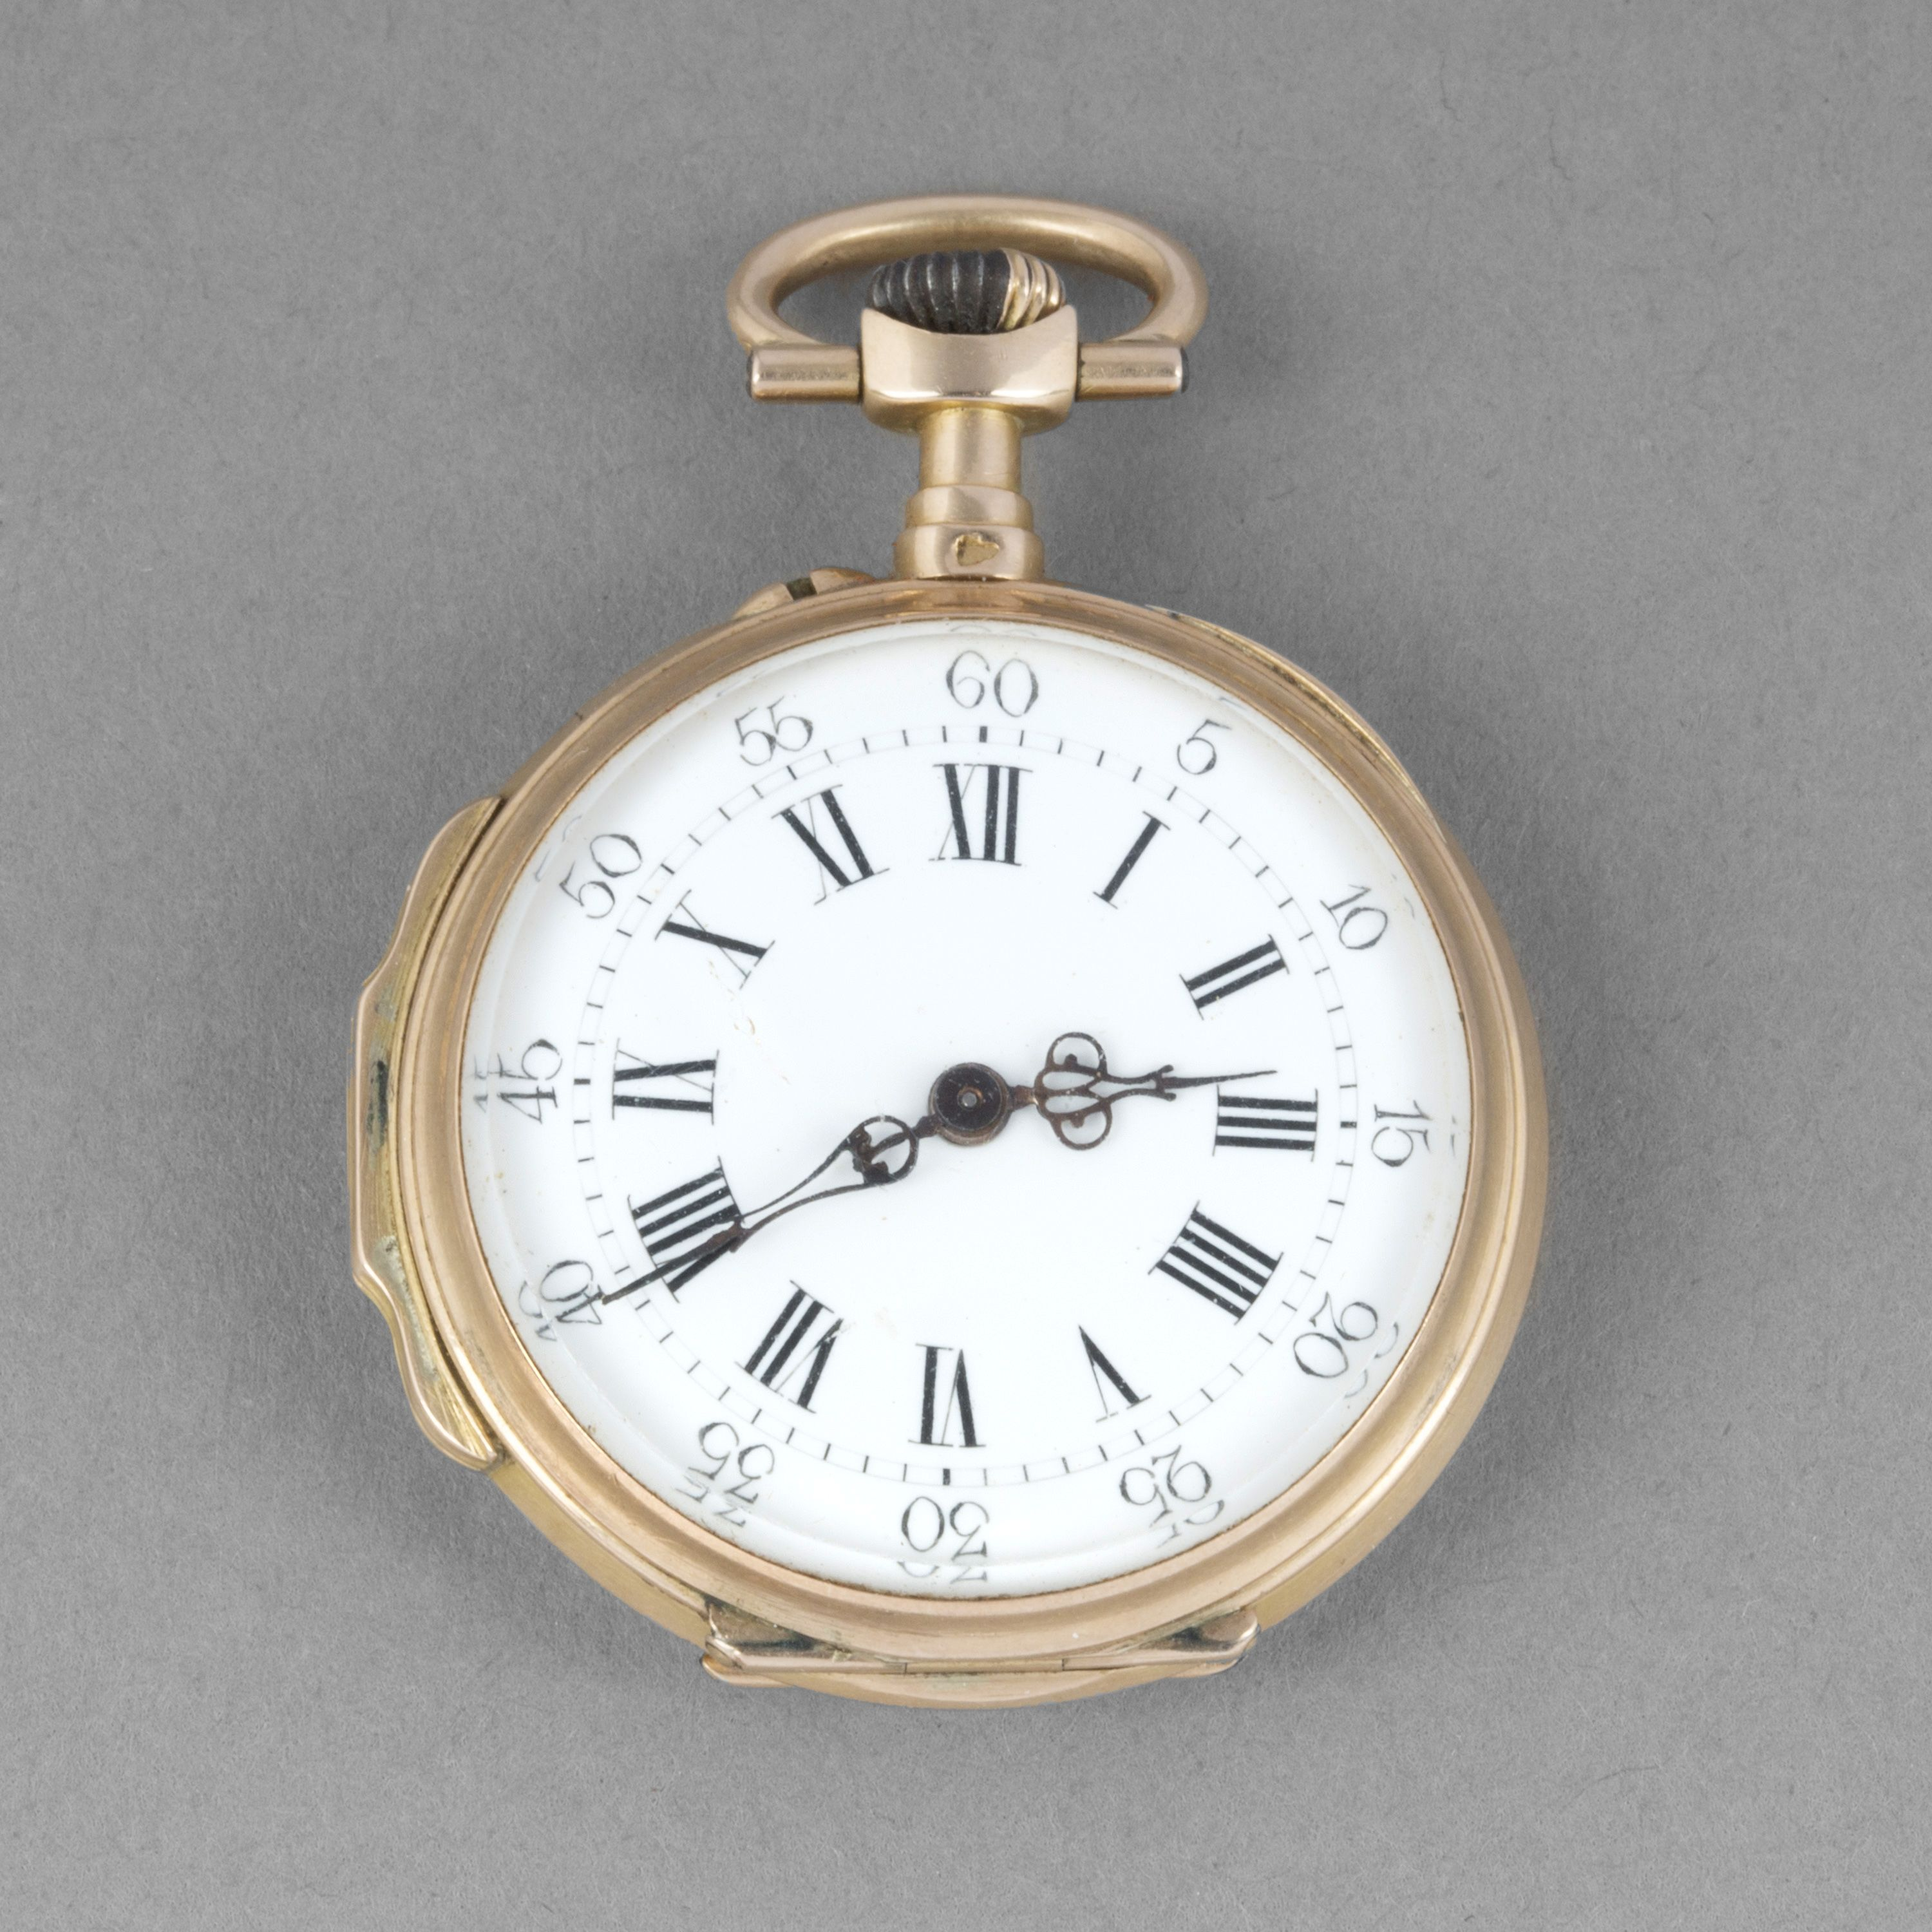 montre gousset or